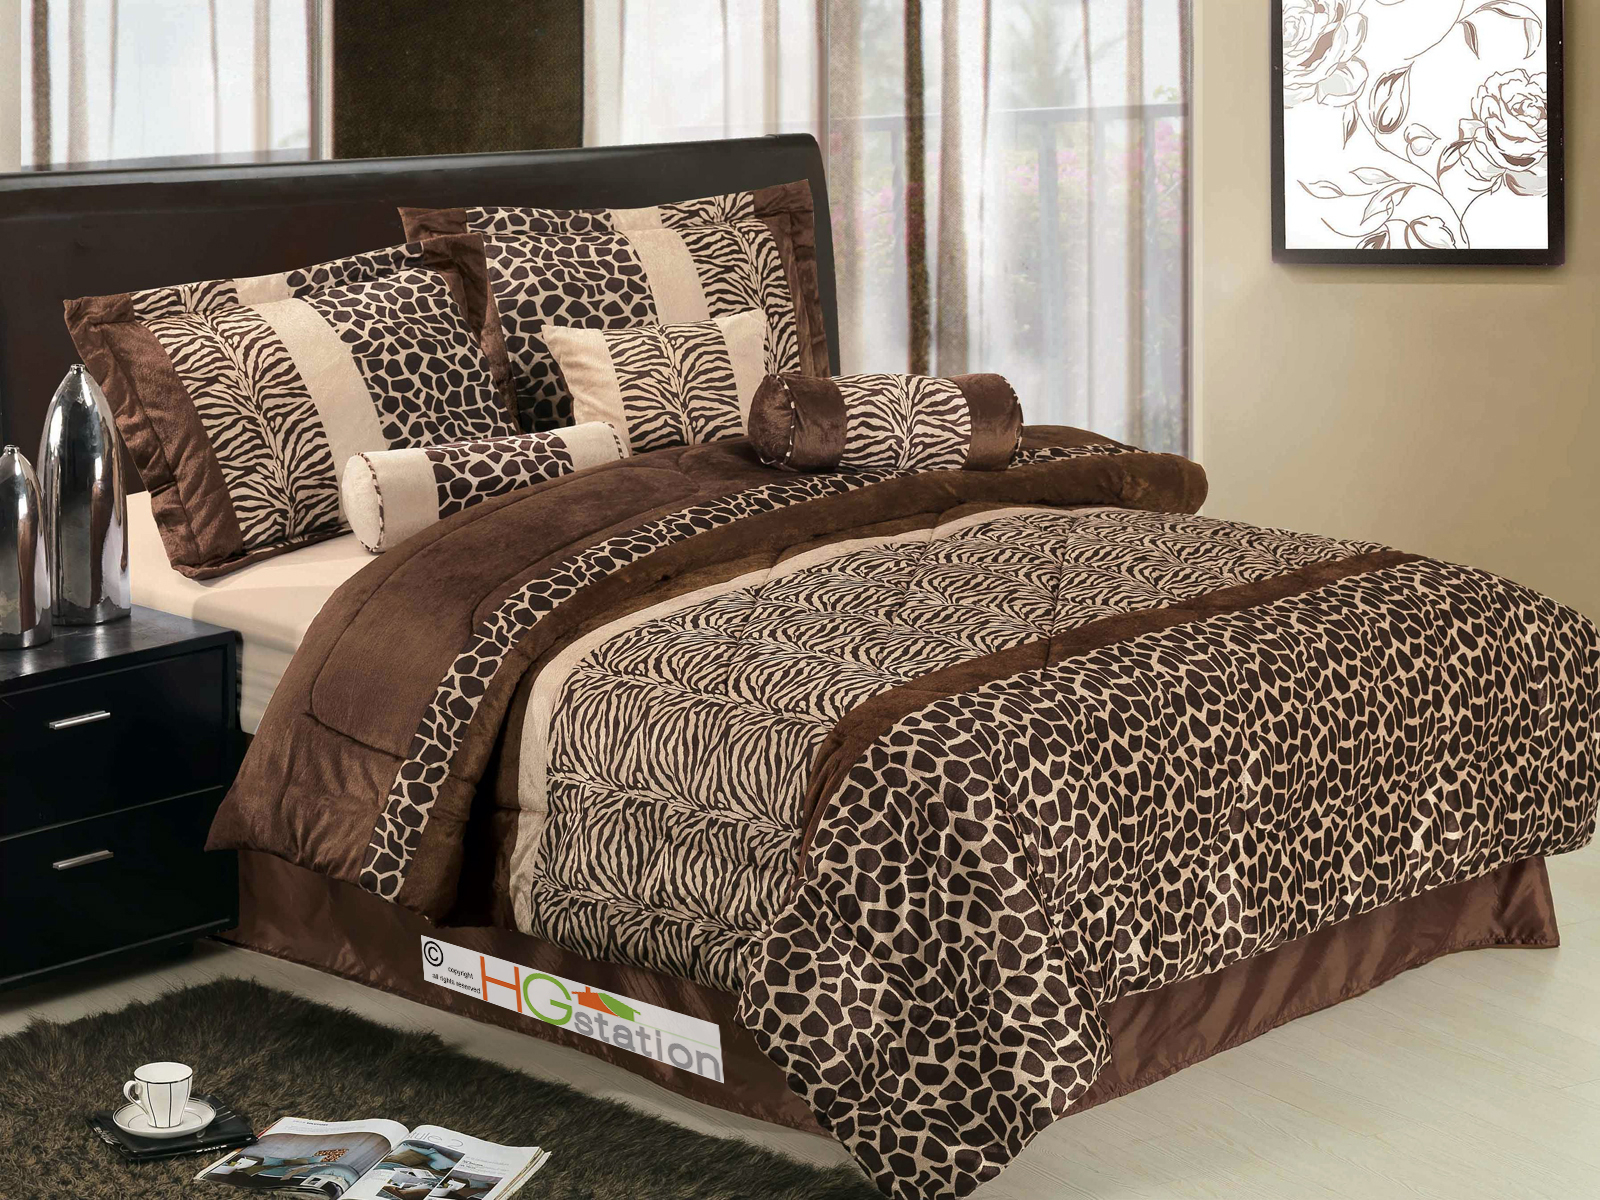 7 Piece Safari - Zebra - Giraffe Print Brown Micro Fur Comforter Set, Bed in Bag, King Size